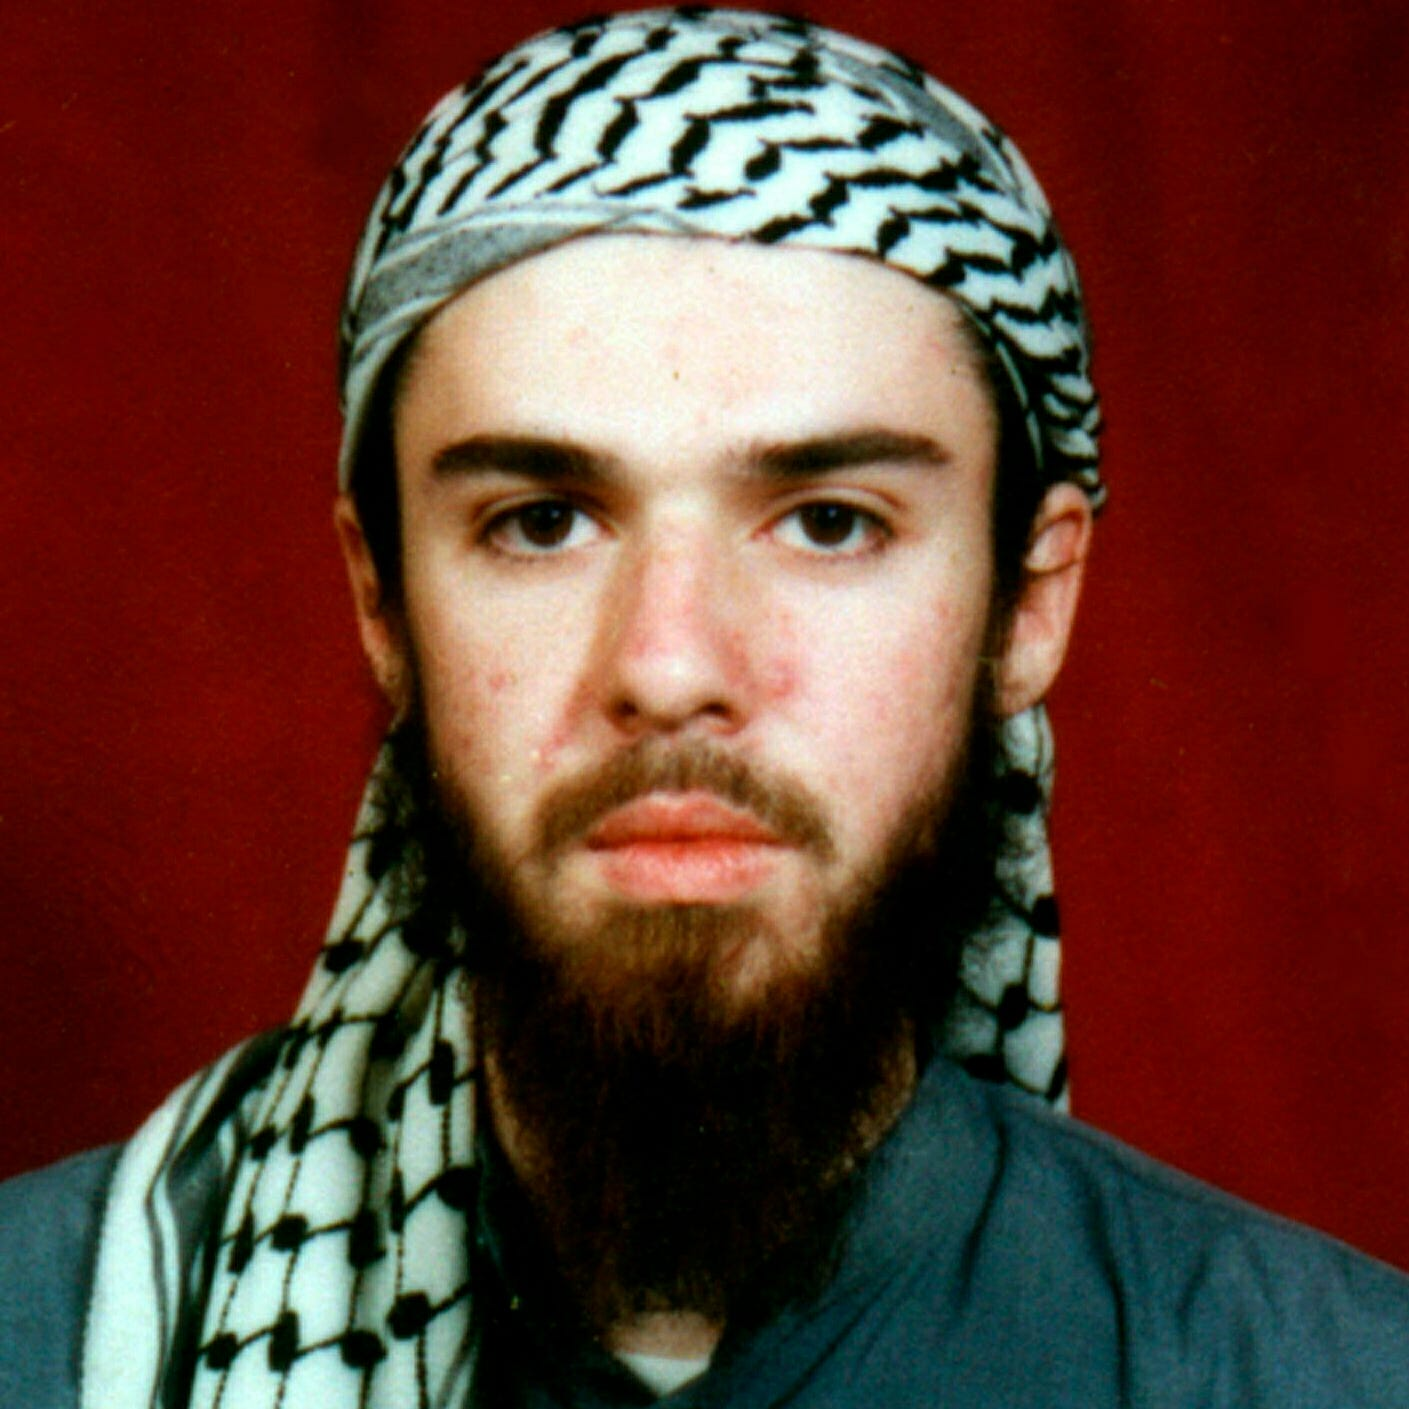 John Walker Lindh, American who became Taliban fighter, released from prison after 17 years